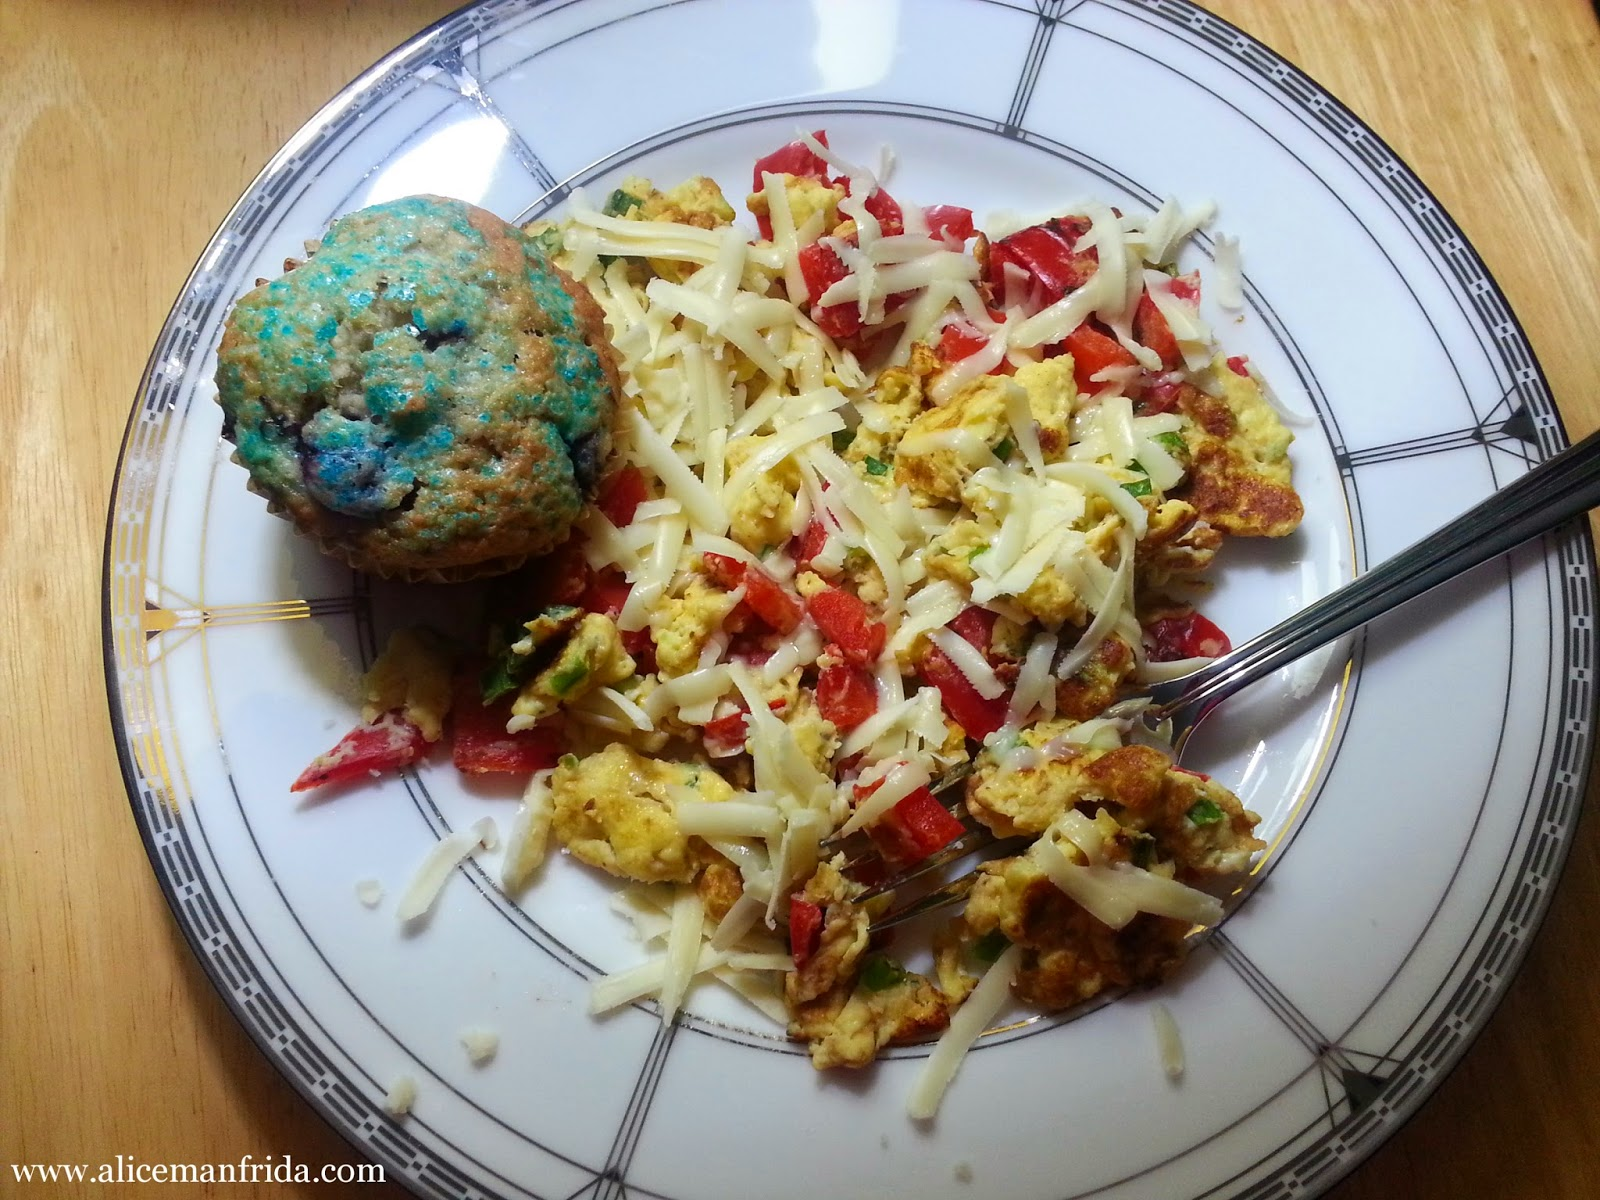 scrambled eggs, blueberry muffins